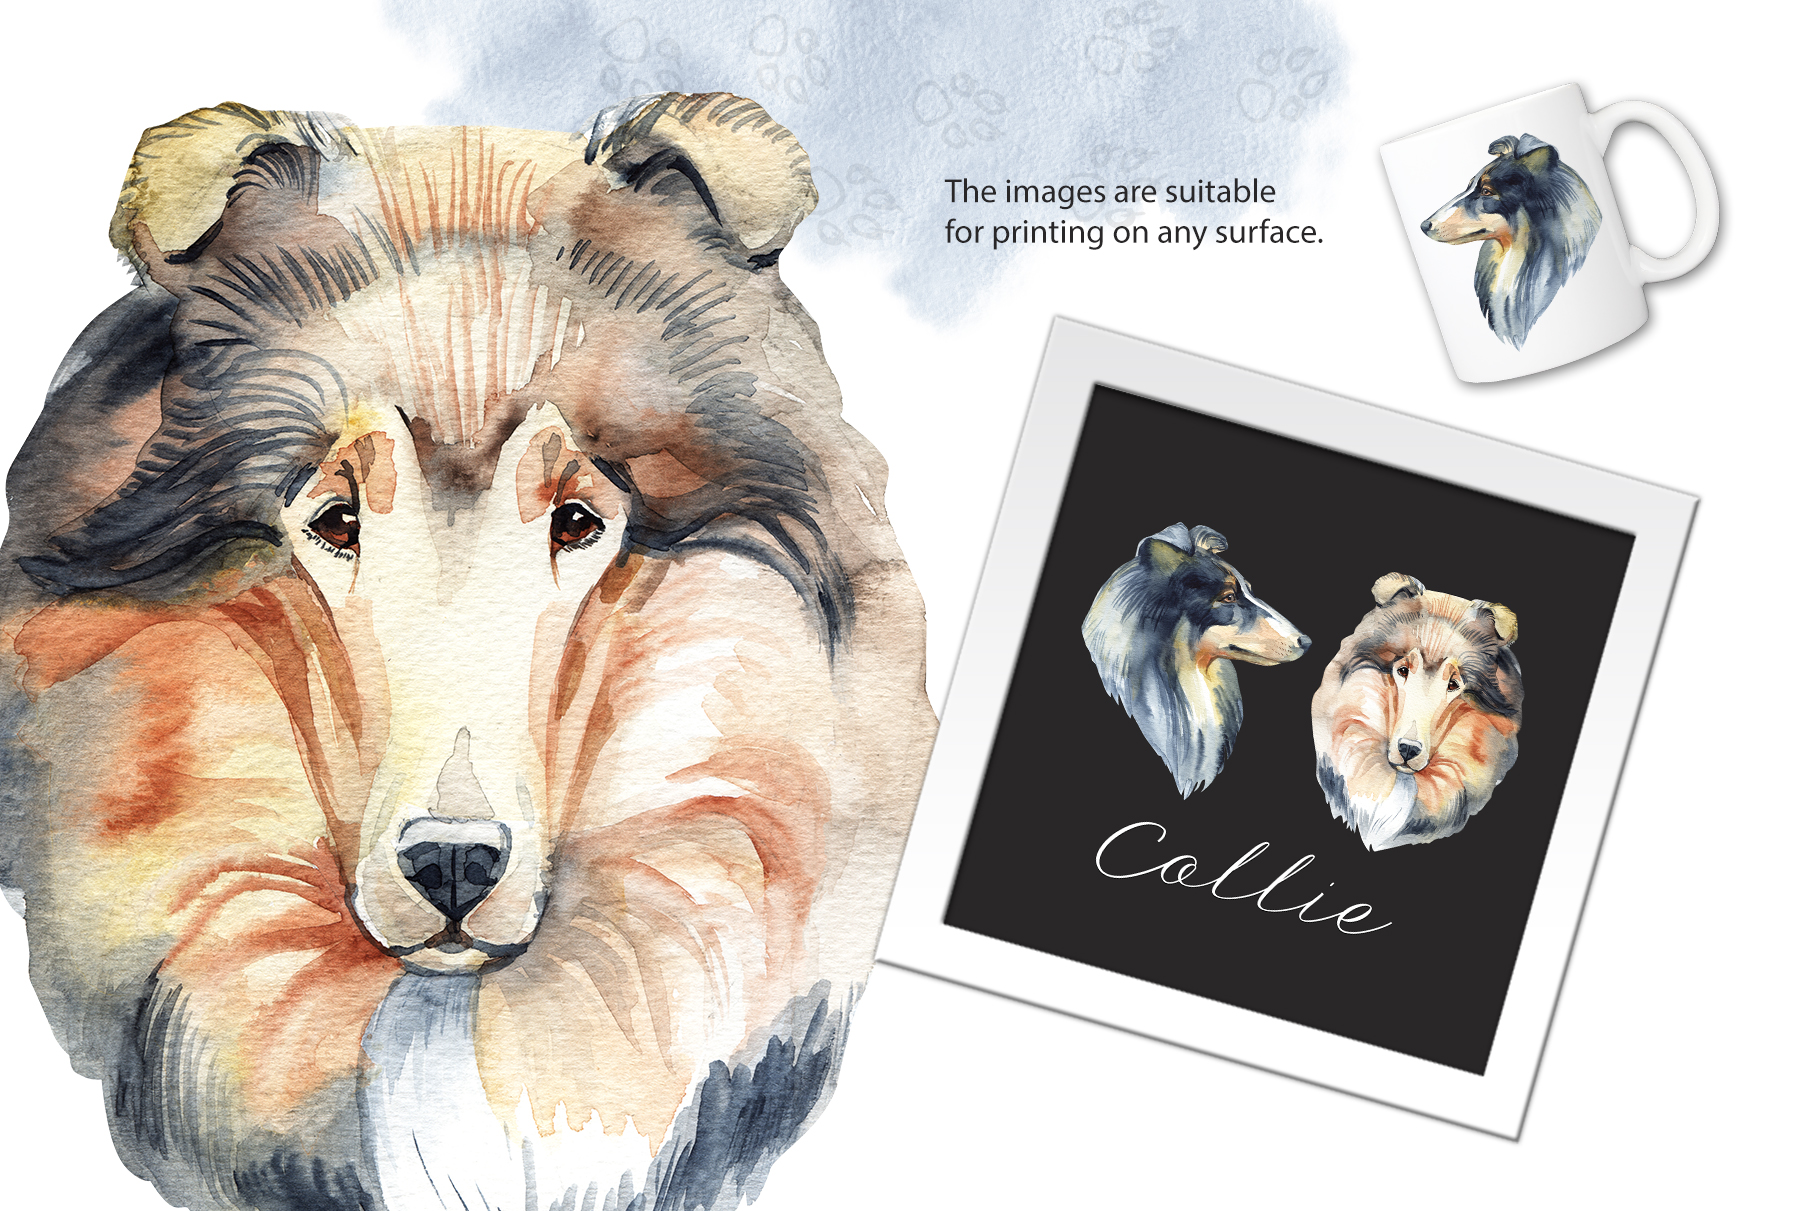 Watercolor dog - Collie example image 2